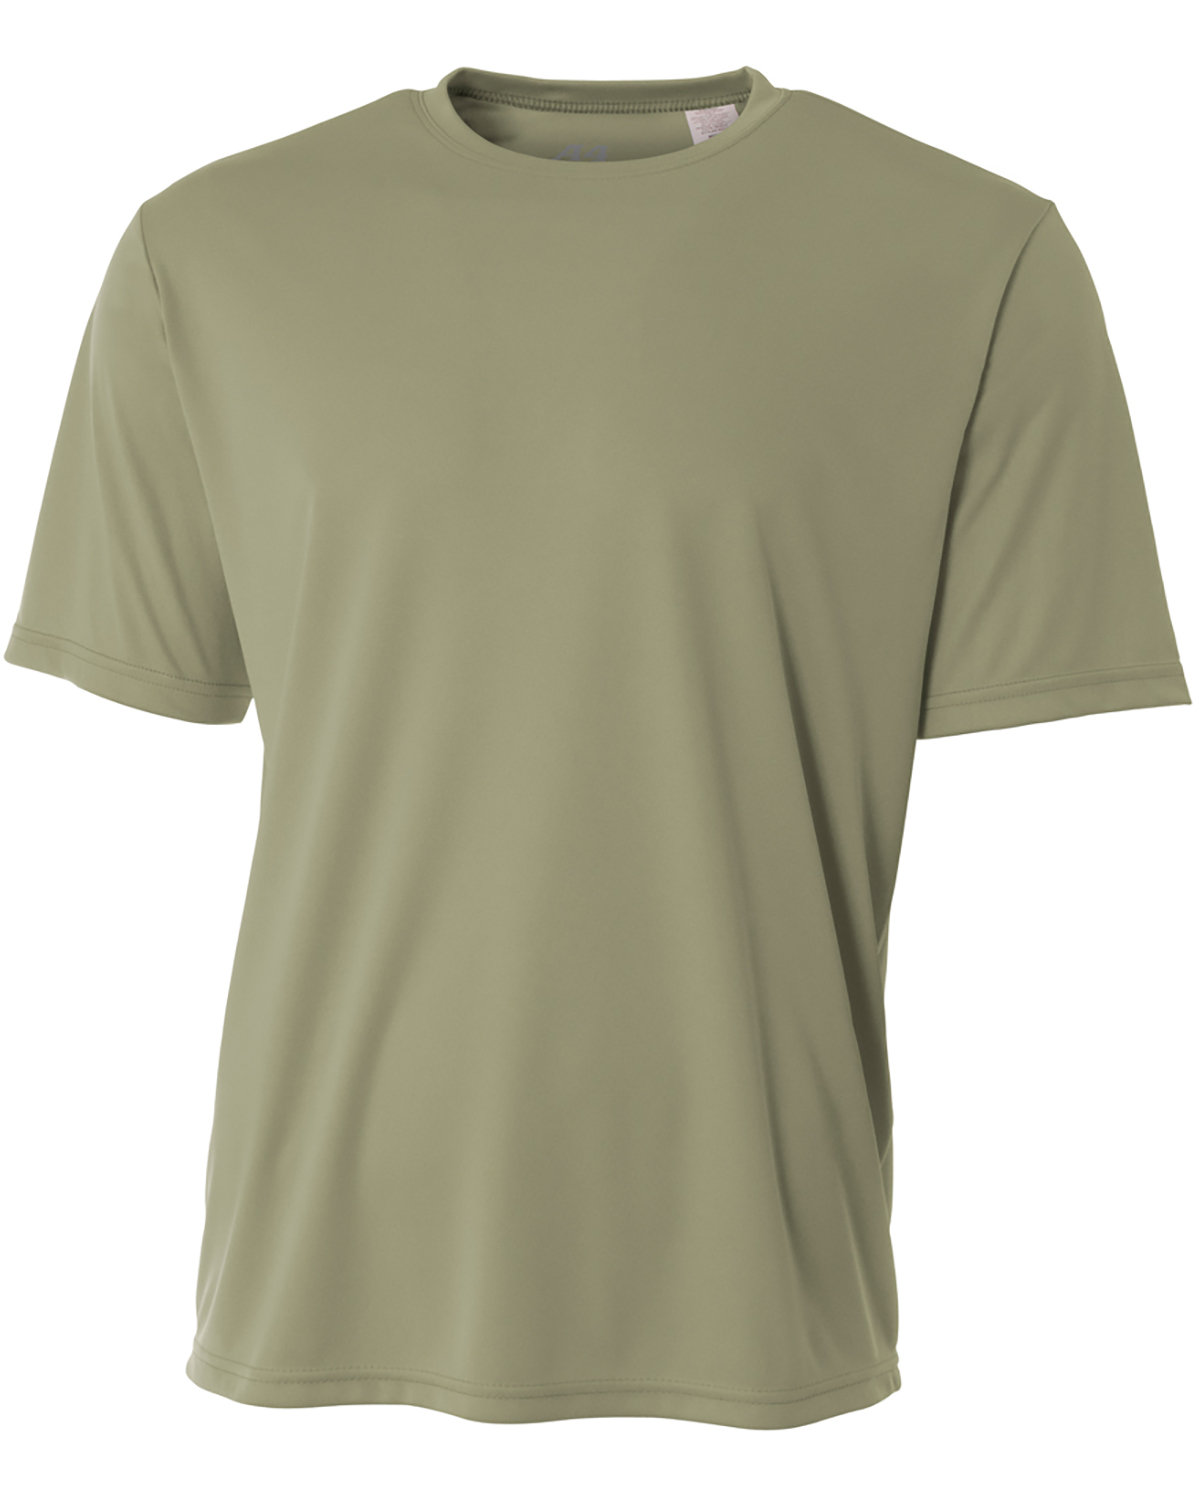 A4 Men's Cooling Performance T-Shirt OLIVE